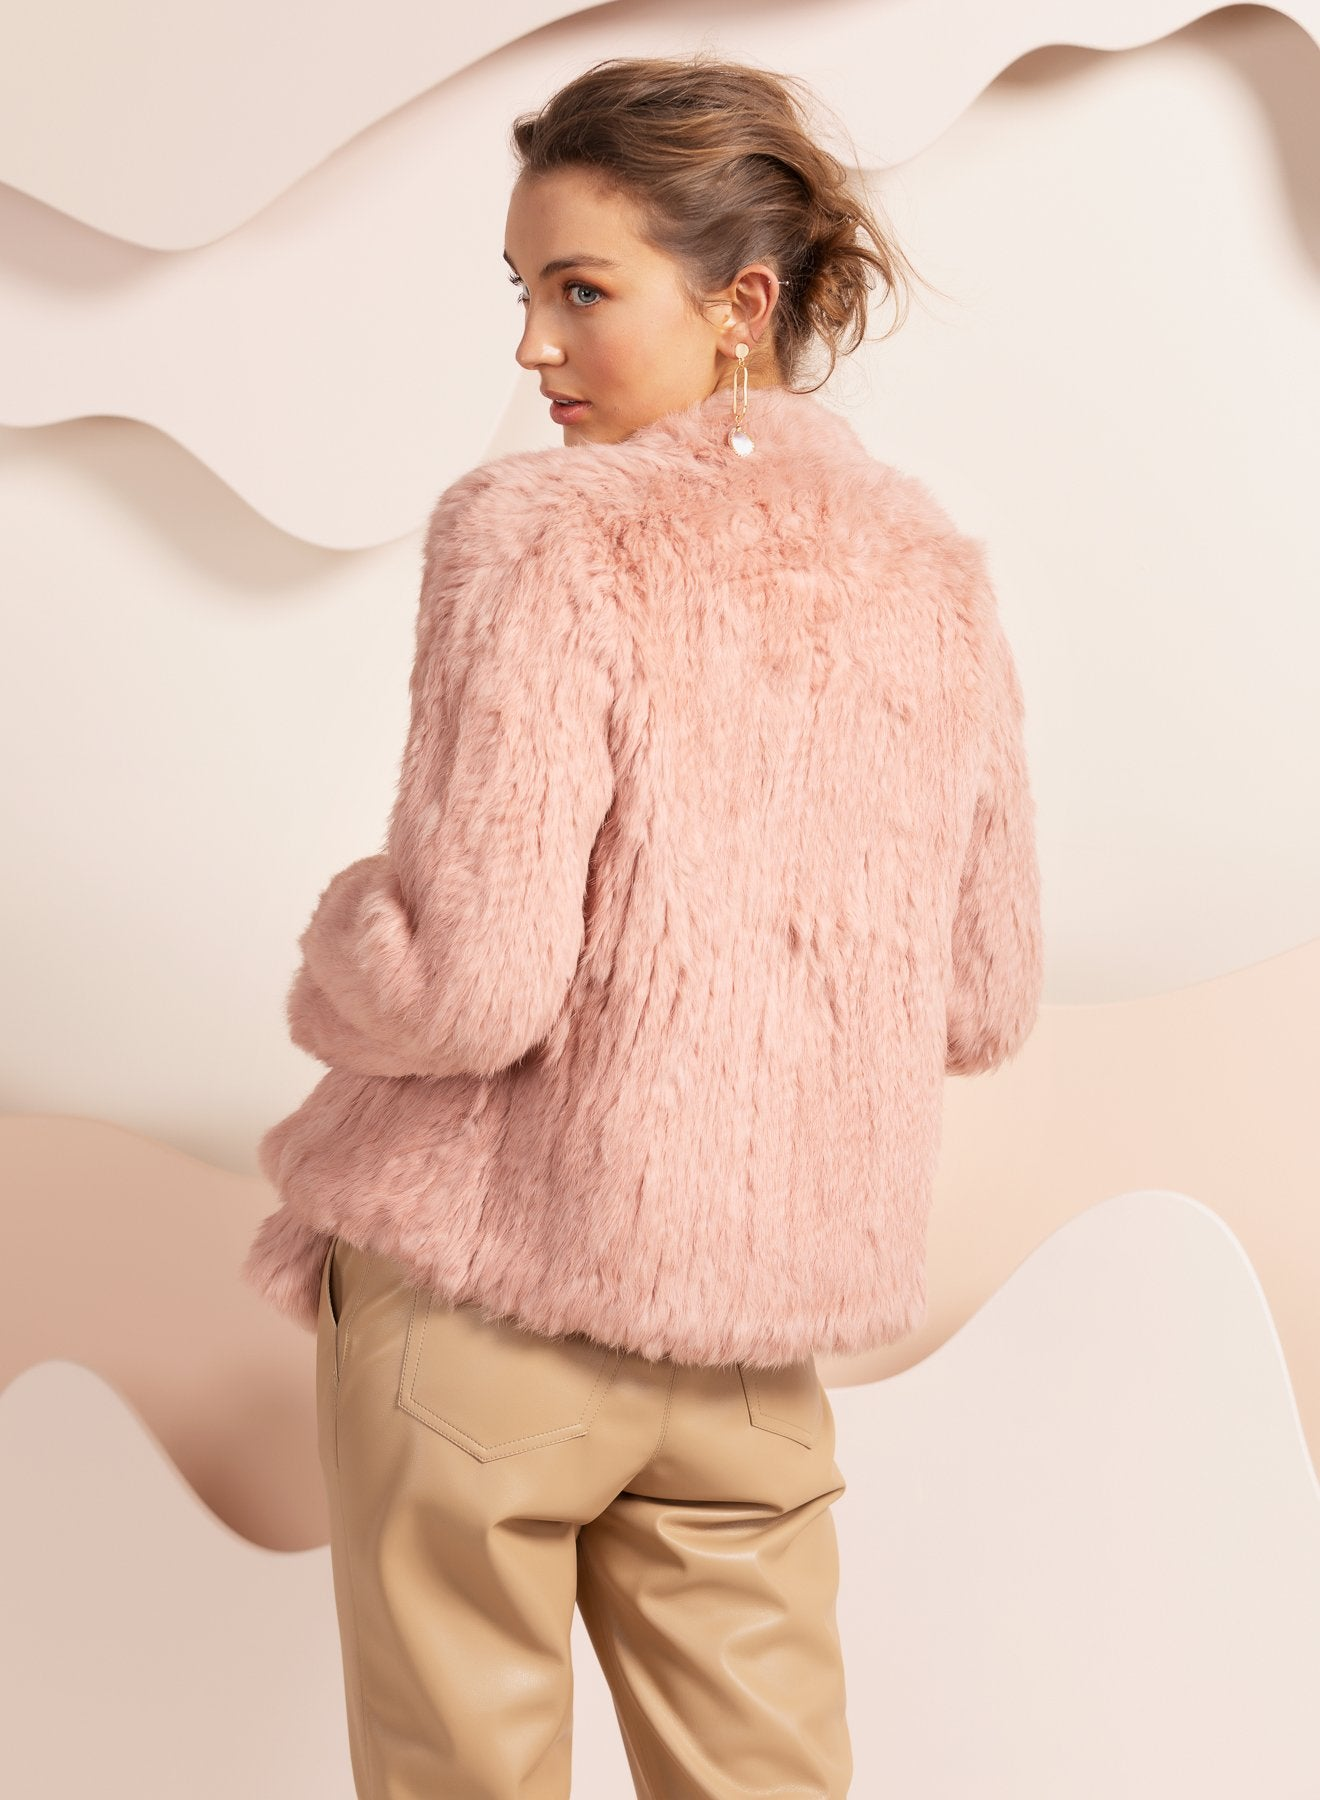 dusty pink valencia real fur jacket Australia by bubish